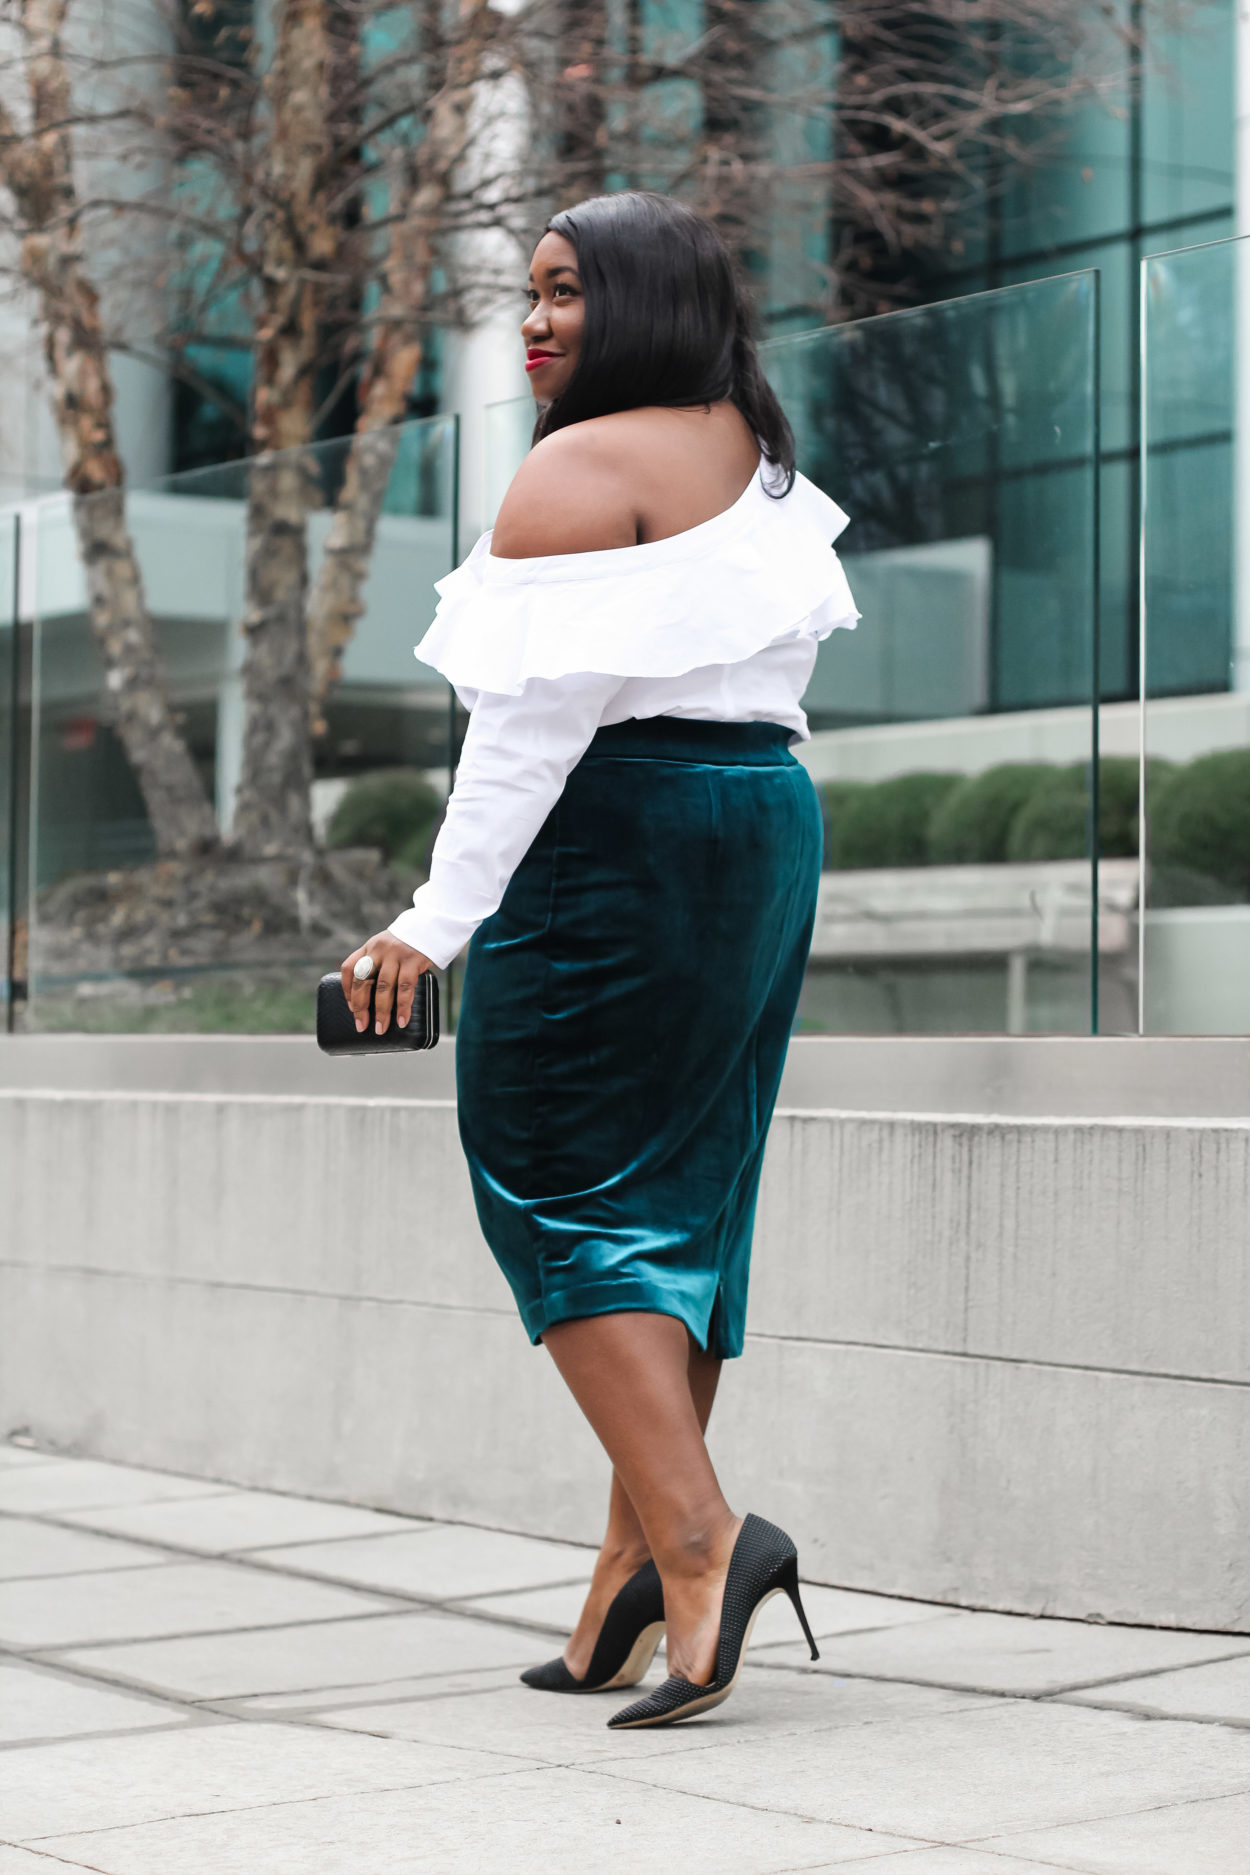 How To Wear Velvet Skirt Outfit Plus Size Fashion Blog Shapely Chic Sheri Plus Size Fashion Blog For Curvy Women